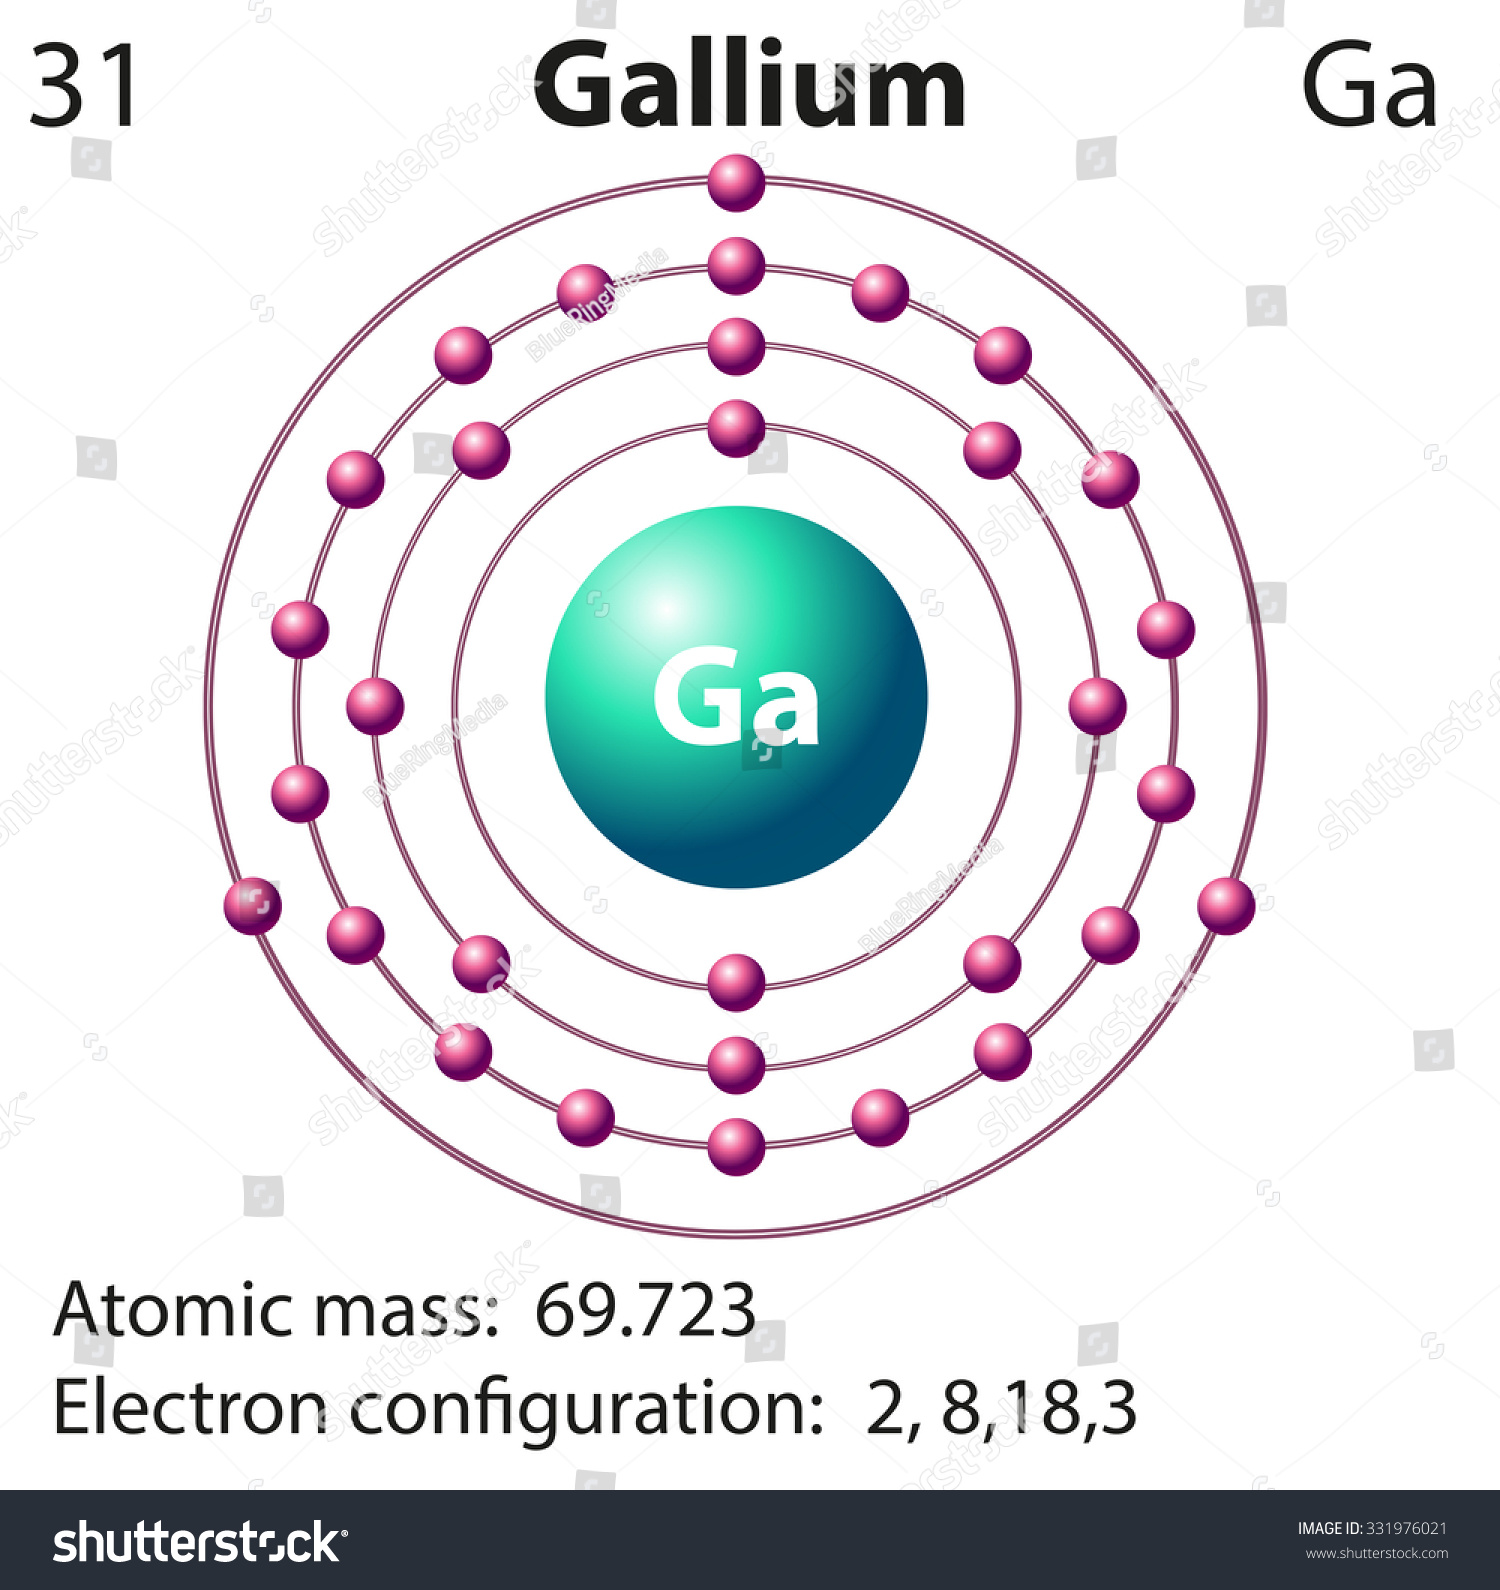 Bohr Diagram For Gallium Search Wiring Diagrams Oxygen Electron Shells Configuration Chemistry Iron Model Shell All Elements Of